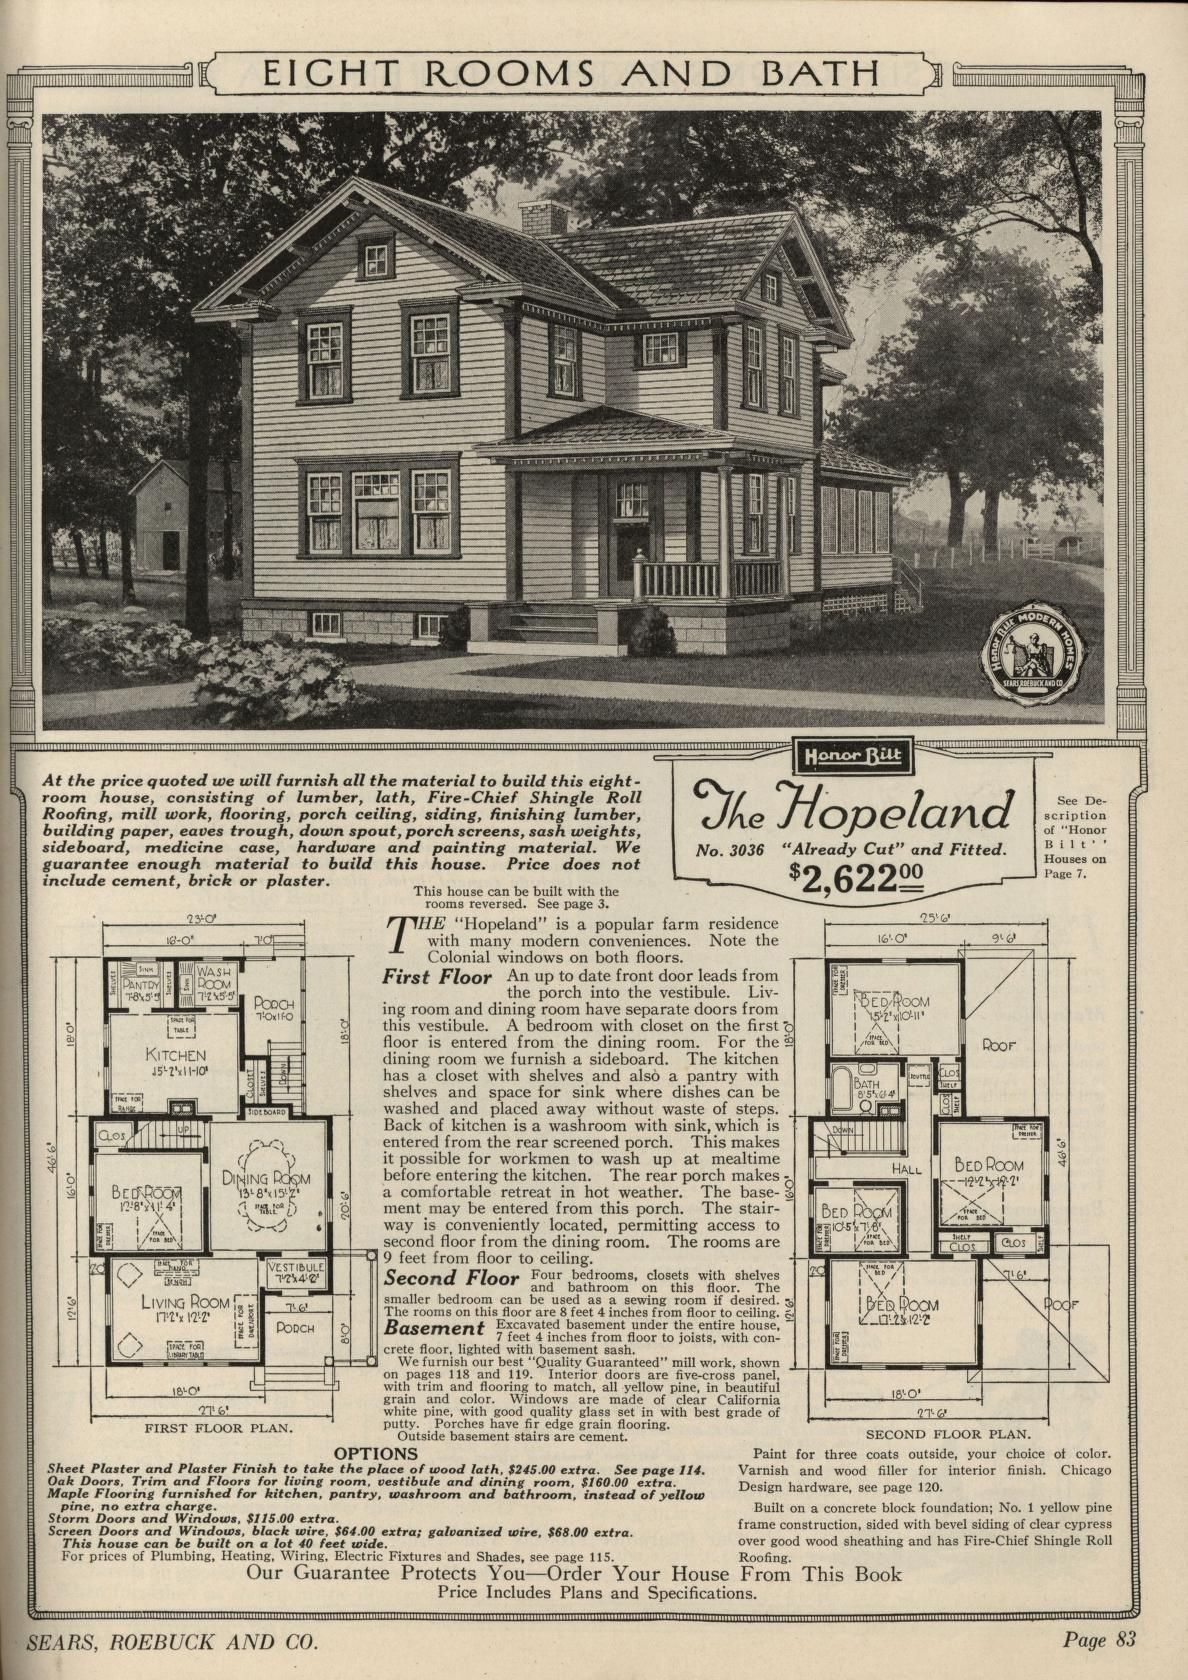 Sears Roebuck And Co Honor Bilt Modern Homes The Hopeland Home Addition Plans Sims House Plans How To Plan